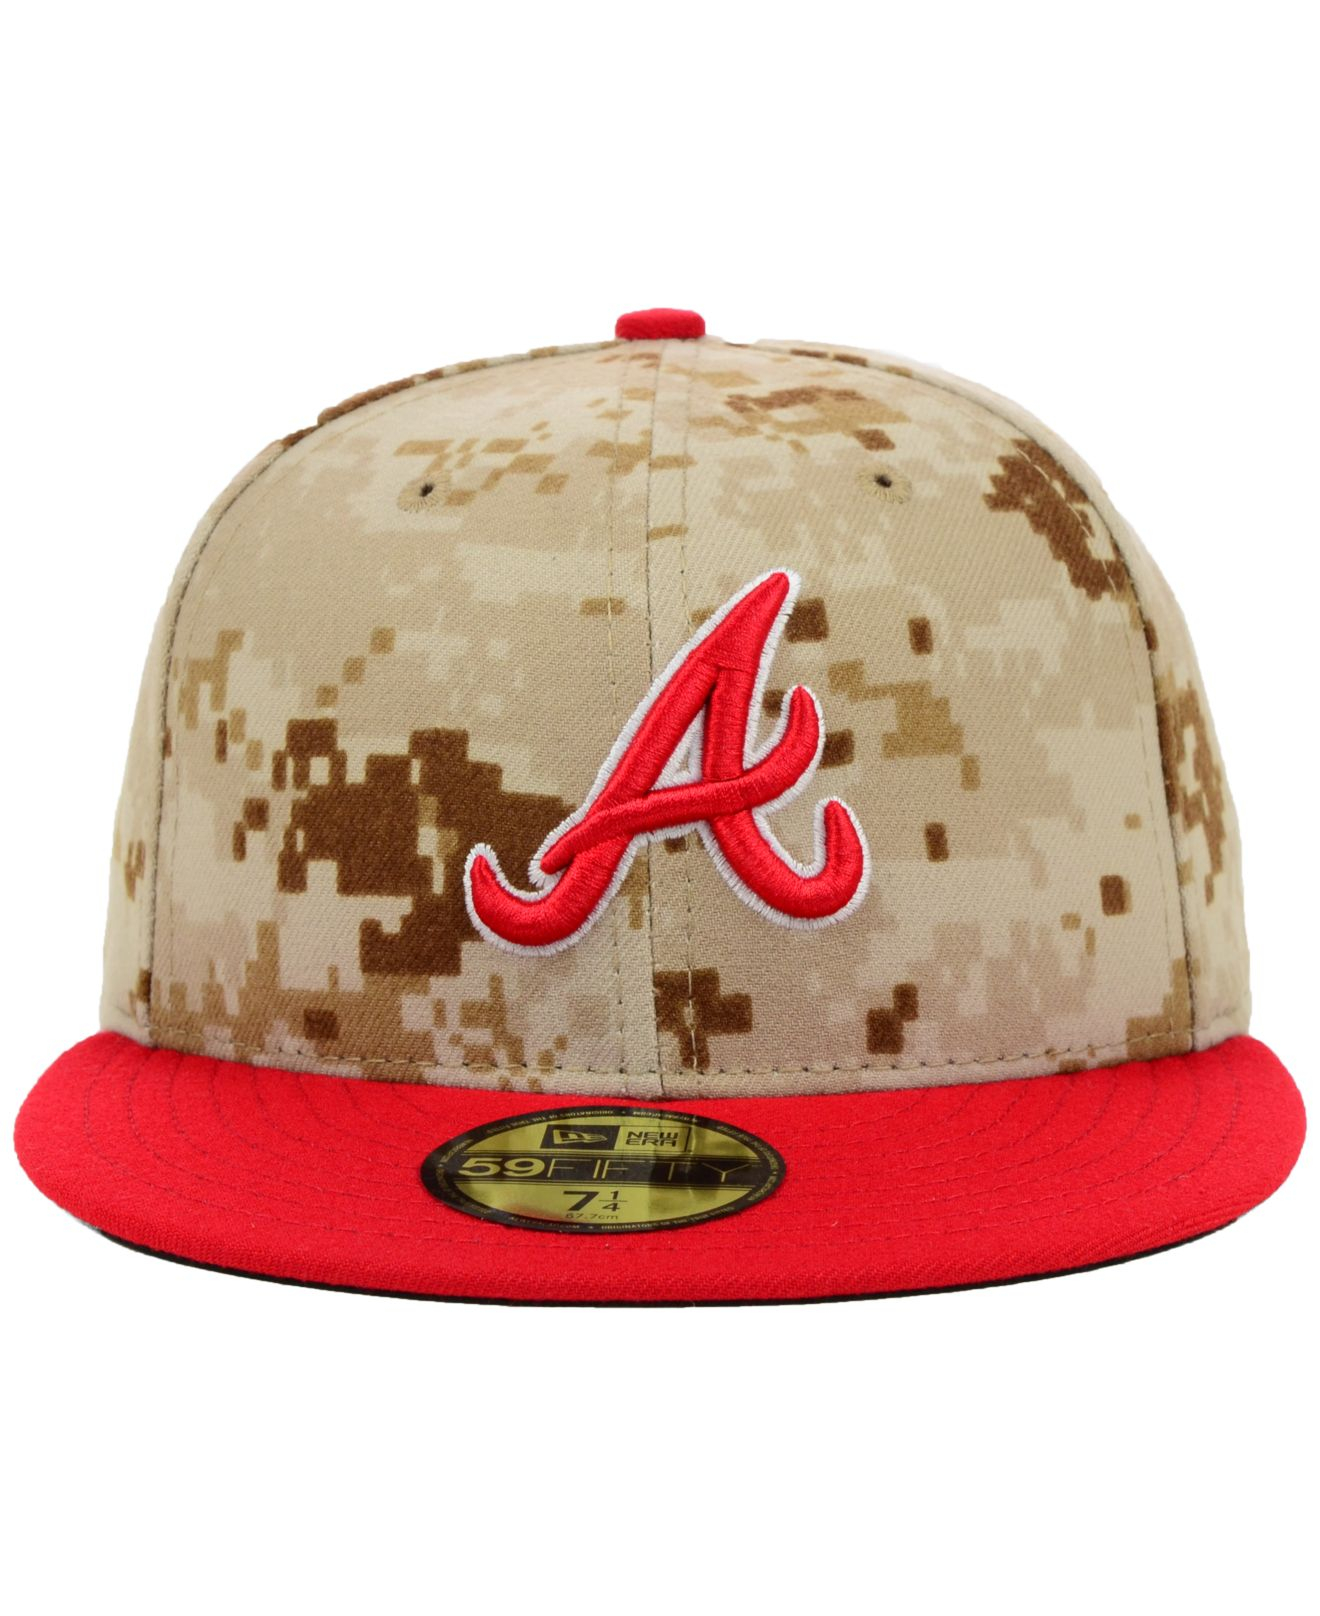 98148be2fbd ... usa lyst ktz atlanta braves mlb 2014 memorial day stars and stripes  59fifty cap in green